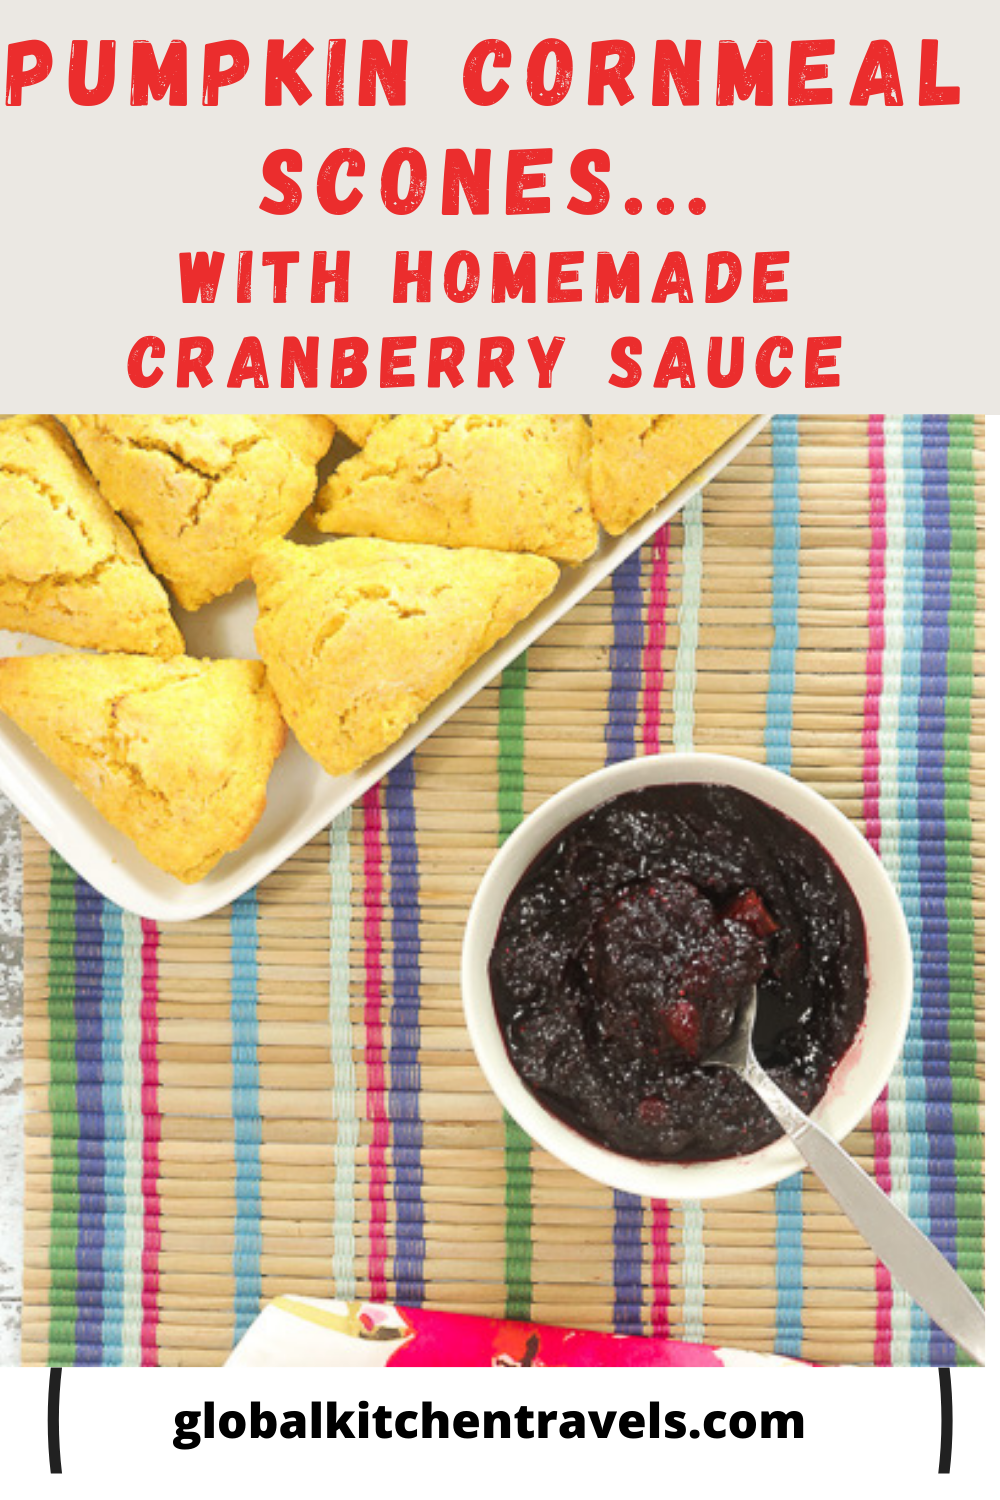 pumpkin scones and creanberry sauce with text